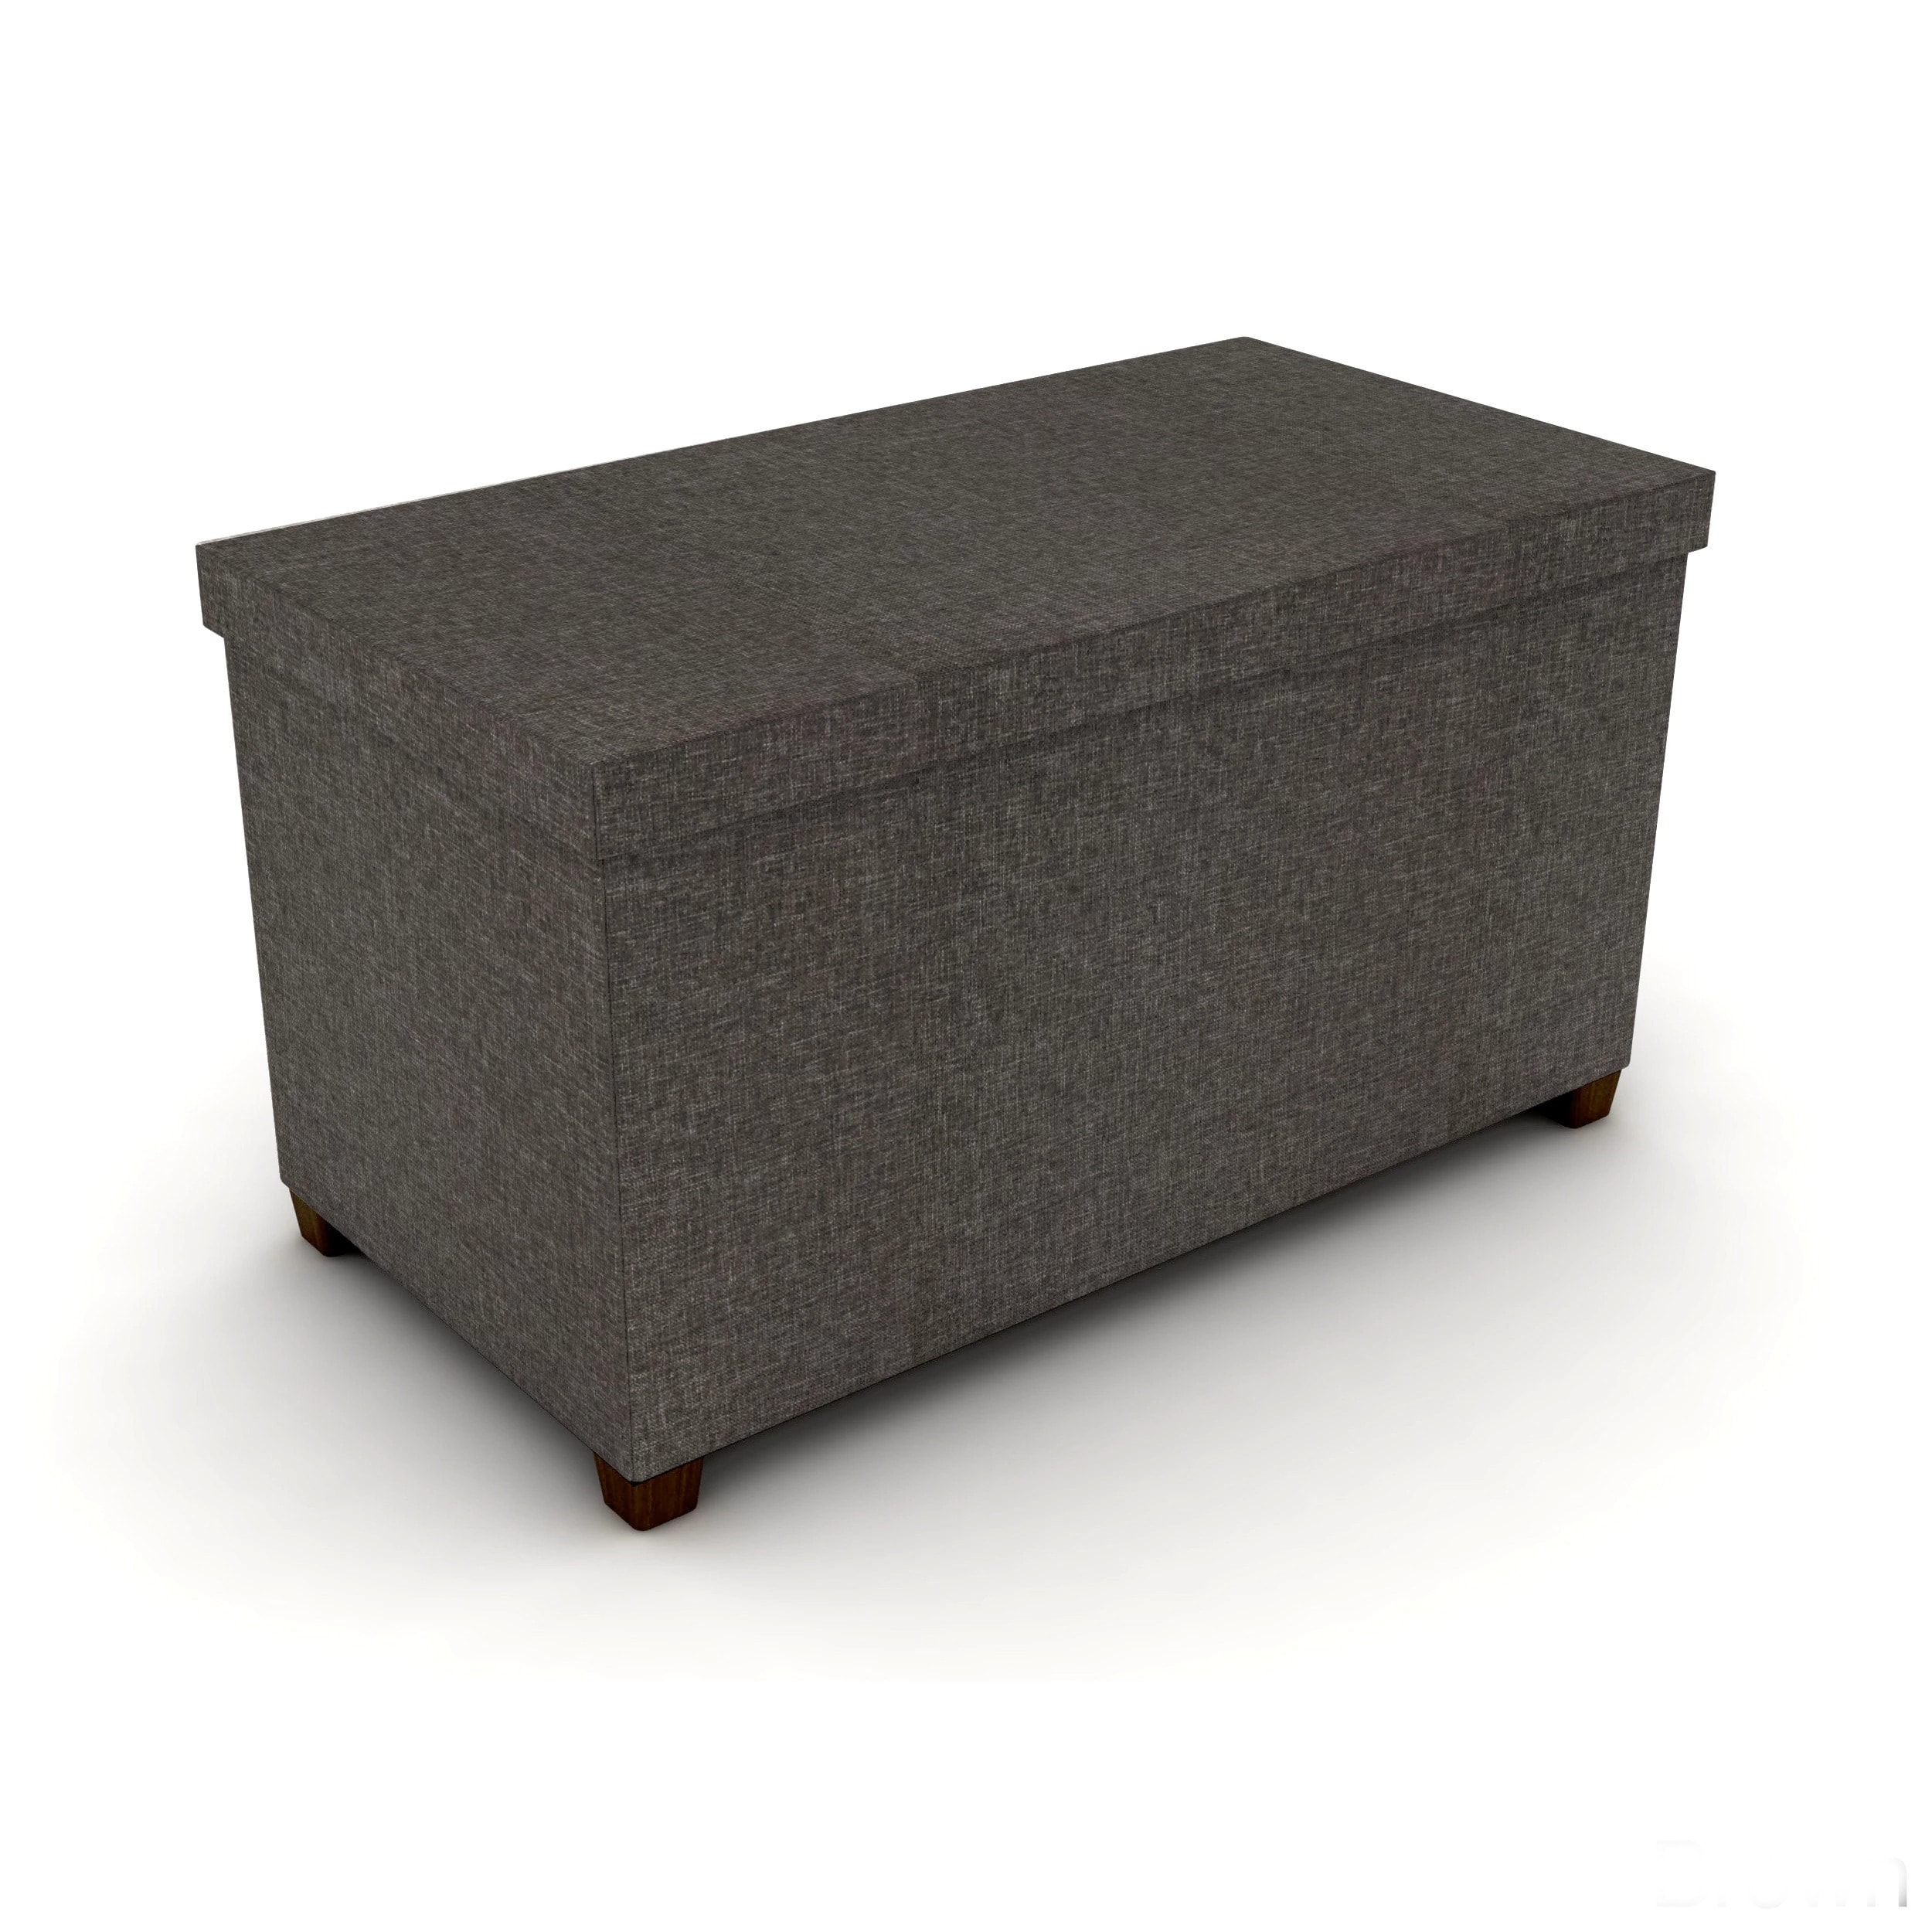 Surprising Urb Space Fabric Storage Ottoman Ncnpc Chair Design For Home Ncnpcorg